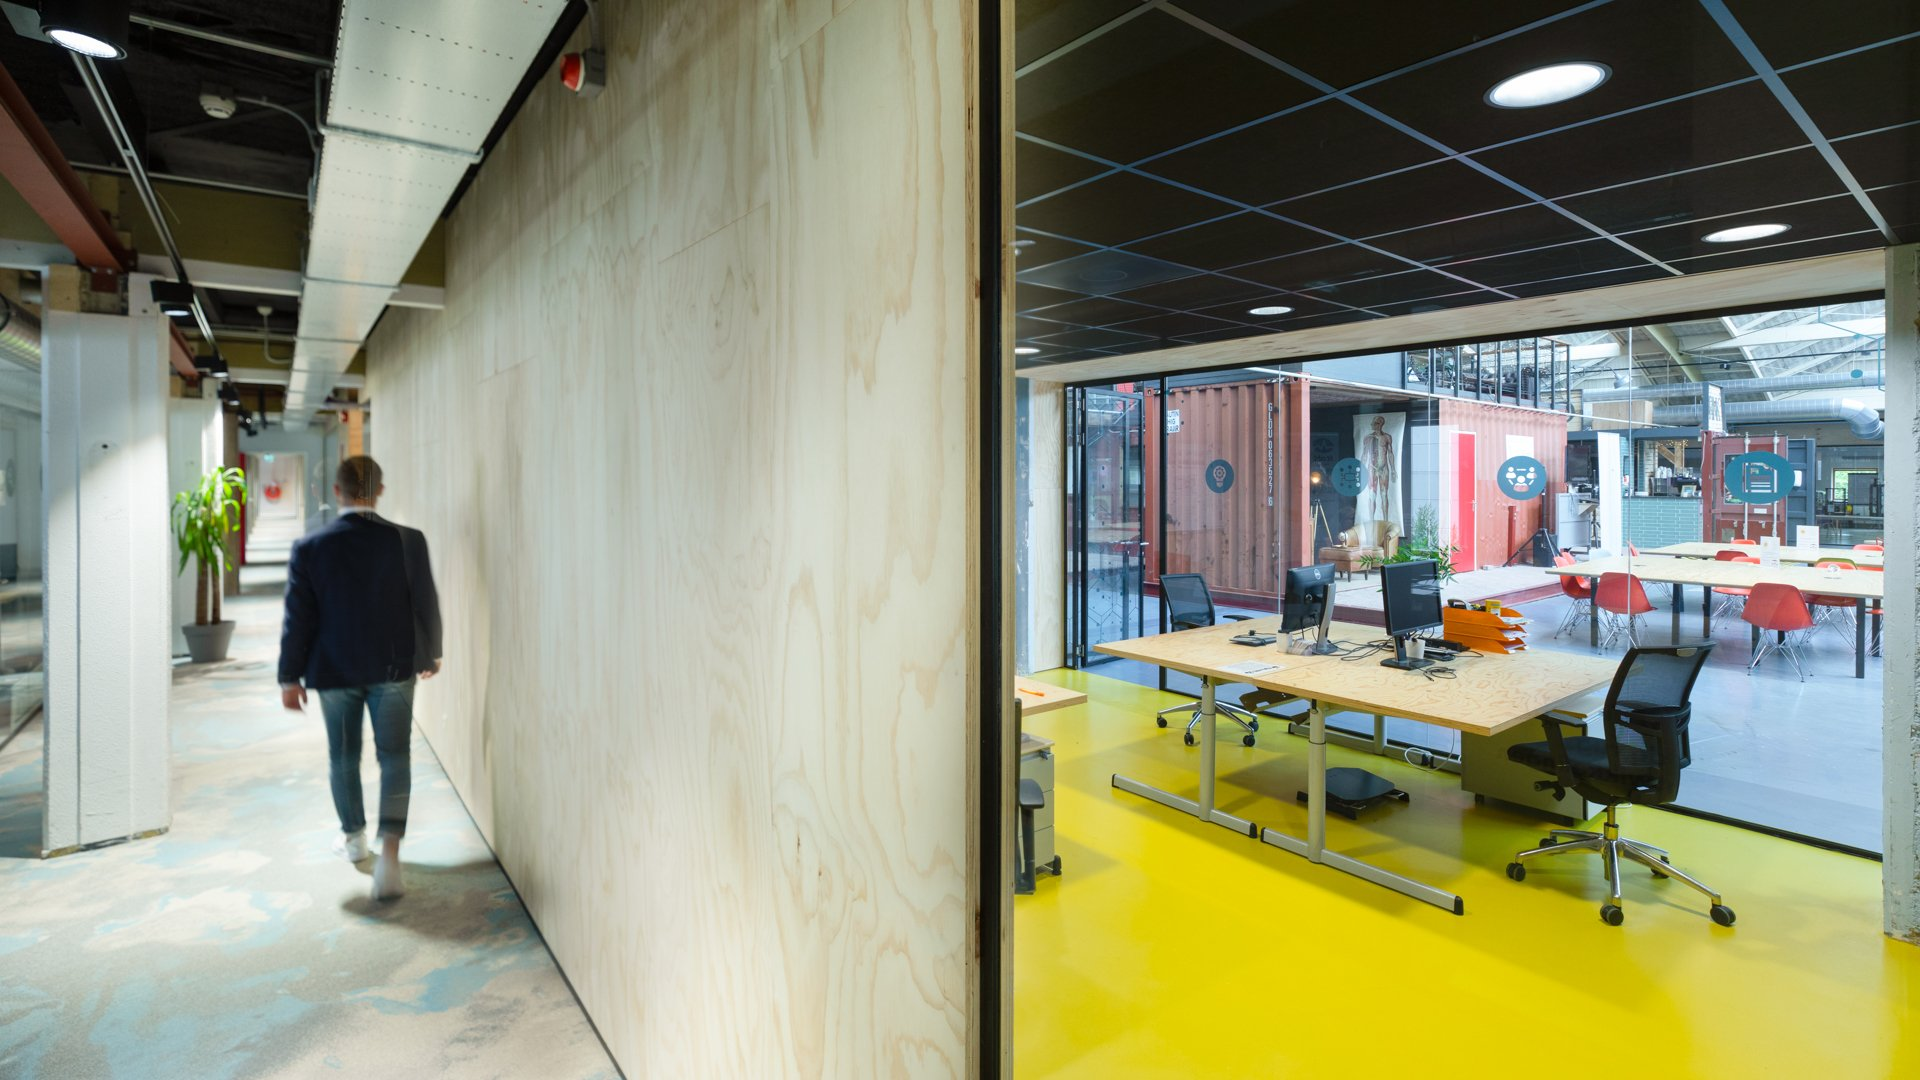 aatvos-health-hub-roden-third-place-design-010